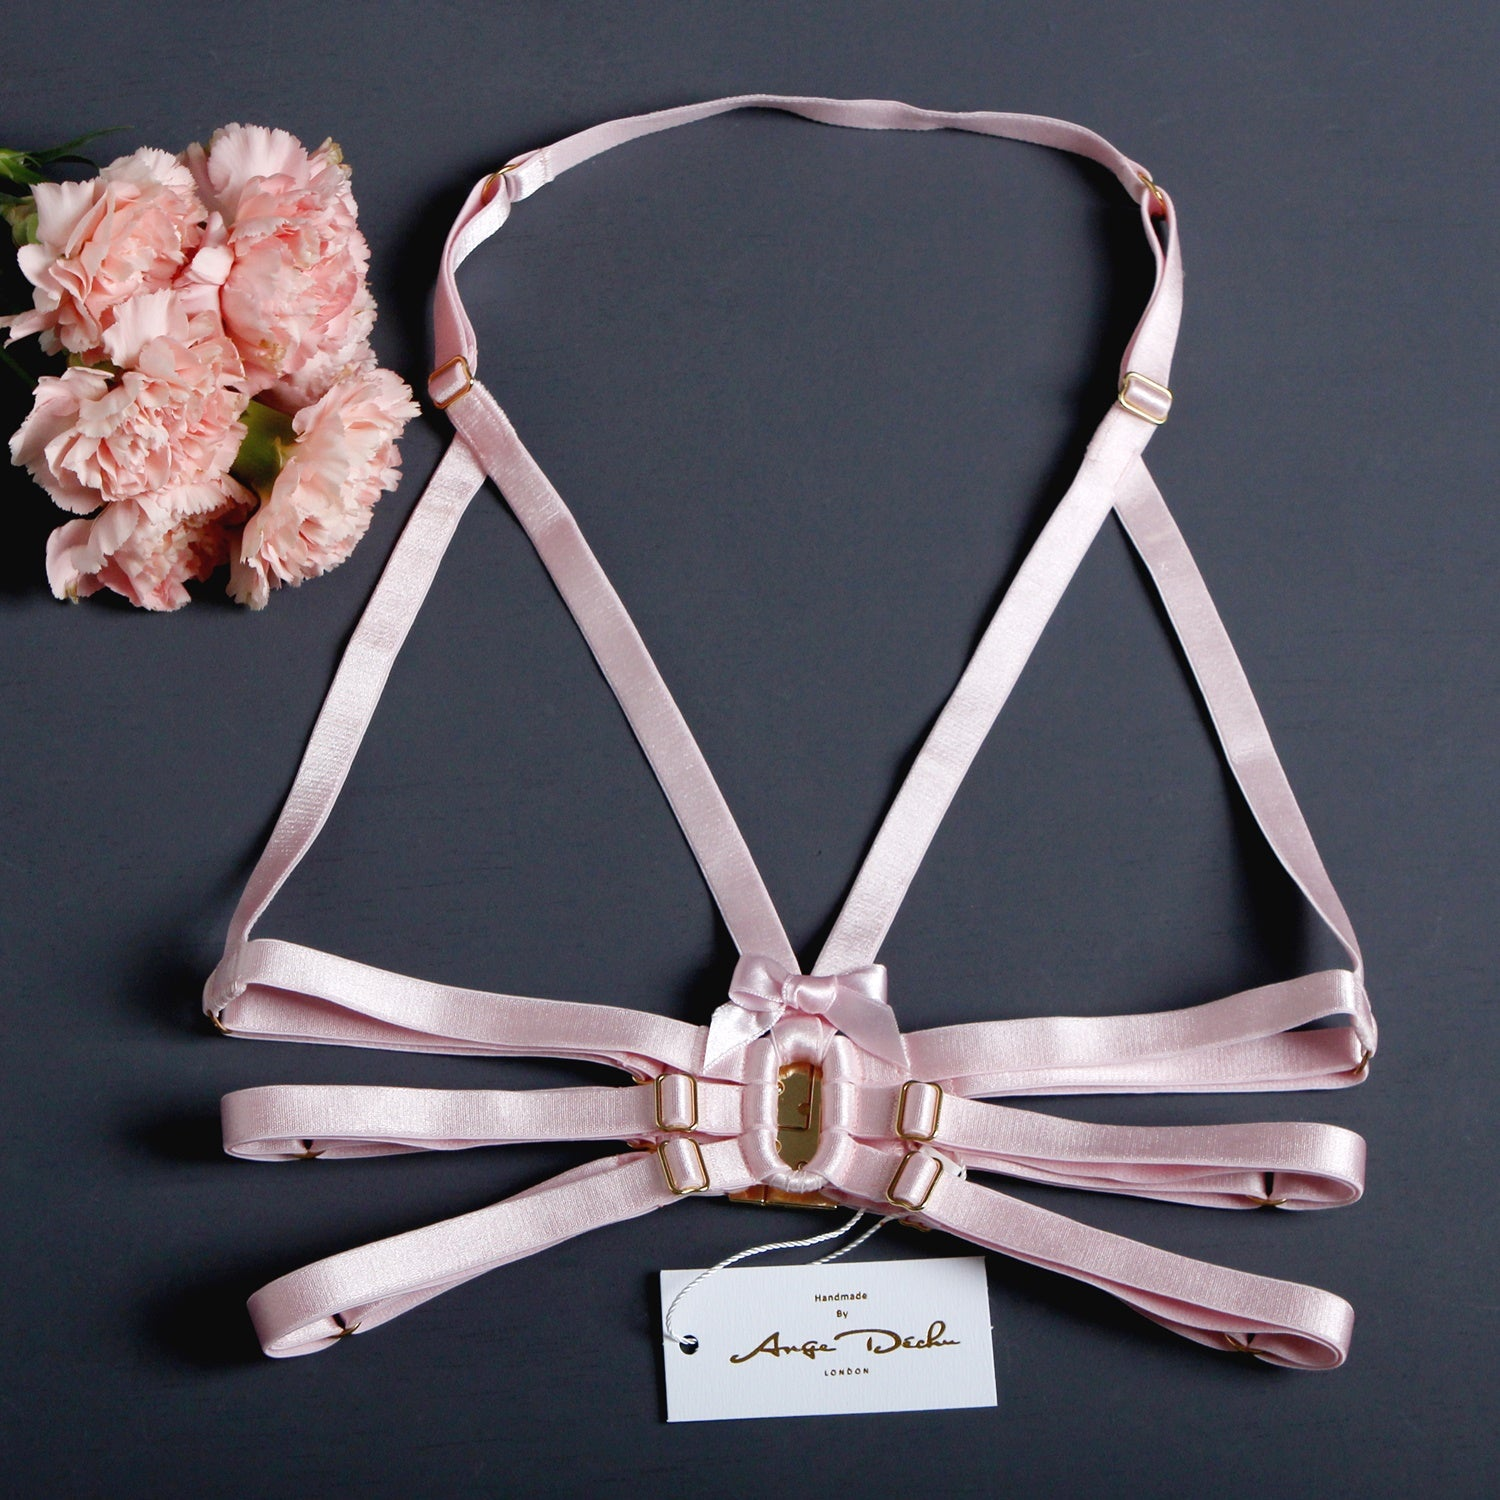 Strappy Harness Bra, Pink harness cage bra, Erotic lingerie, Dancewear, Clubwear, Bondage Fetish Dominatrix outfit by Ange Dechu